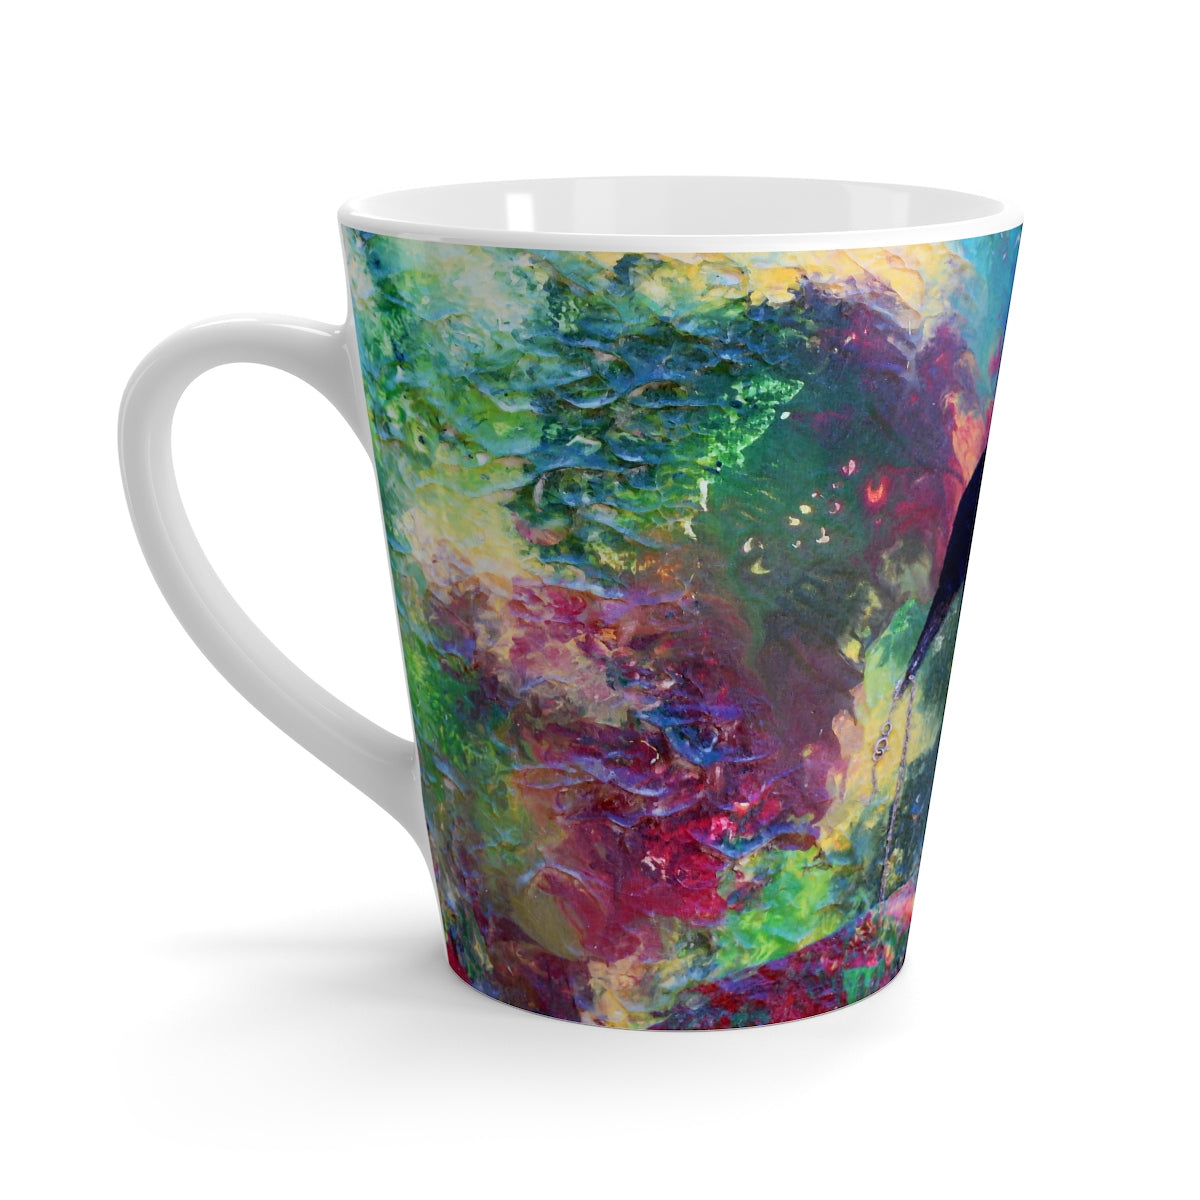 Latte Mug - 'Knowing the Value of the Broken and the Lost'